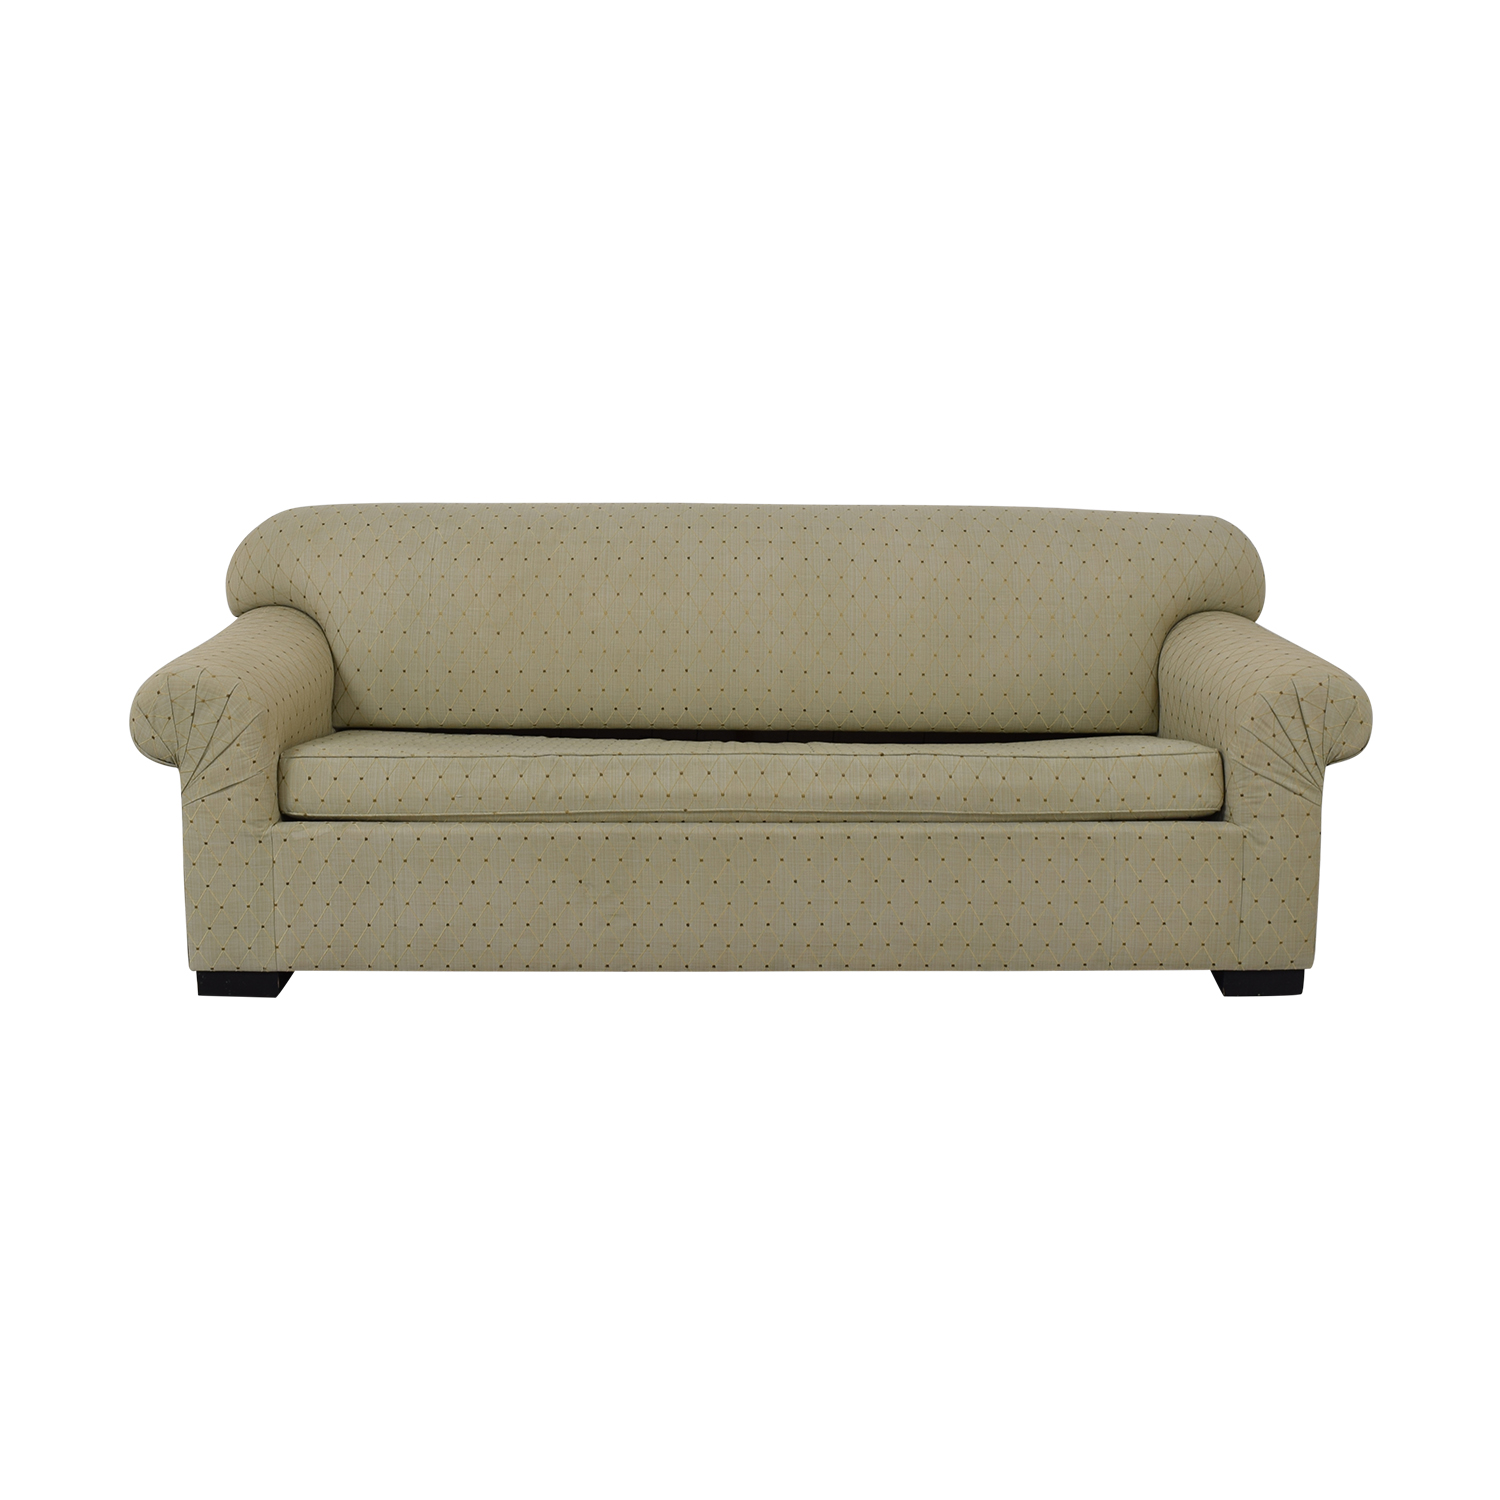 Carlyle Carlyle Queen Pull Out Sofa Bed price